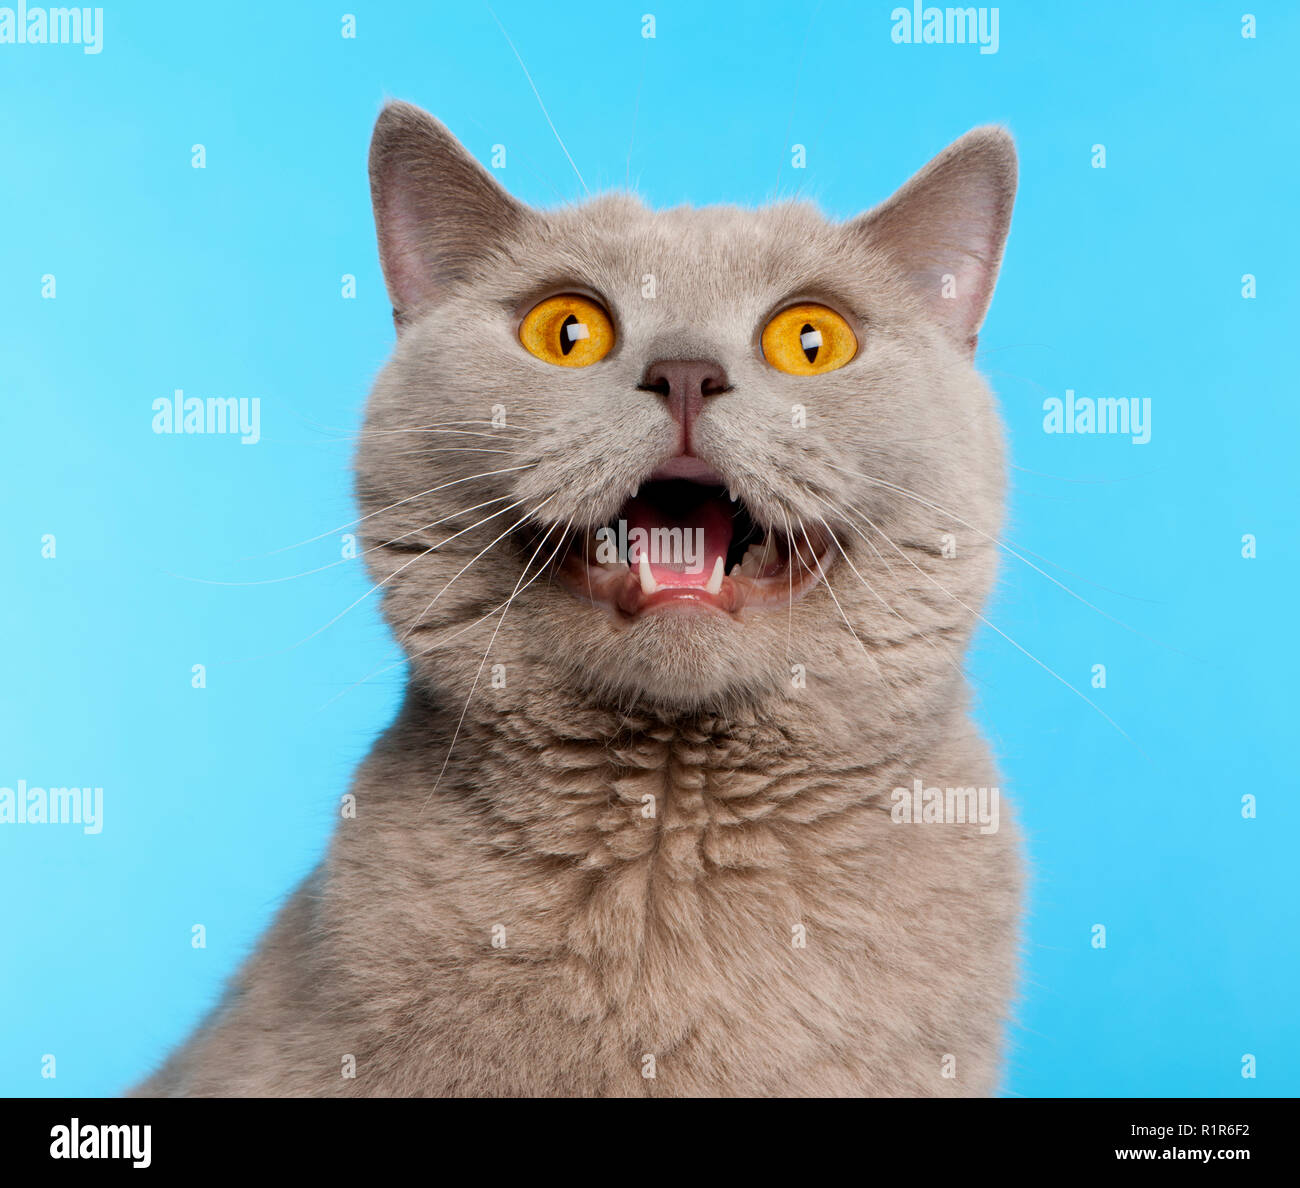 British Shorthair cat, 2 years old, in front of blue background - Stock Image